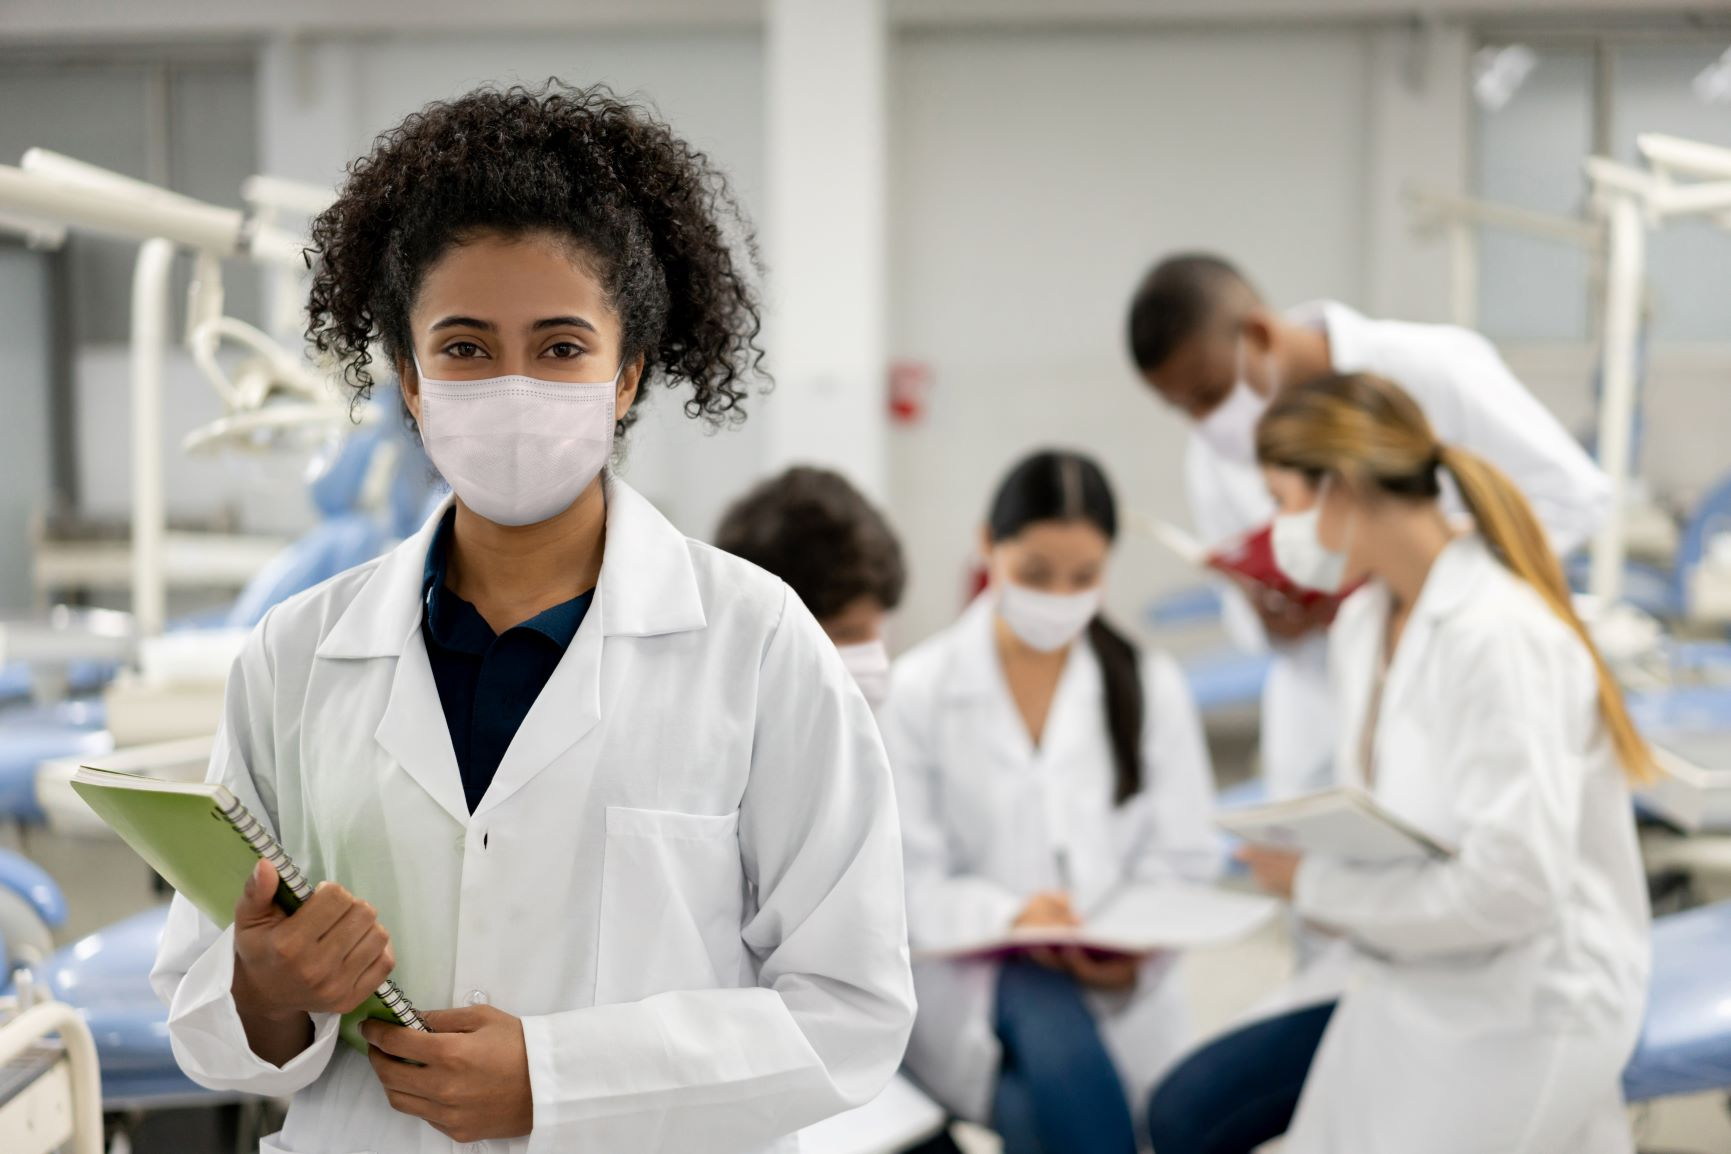 Medical students in masks and lab coats